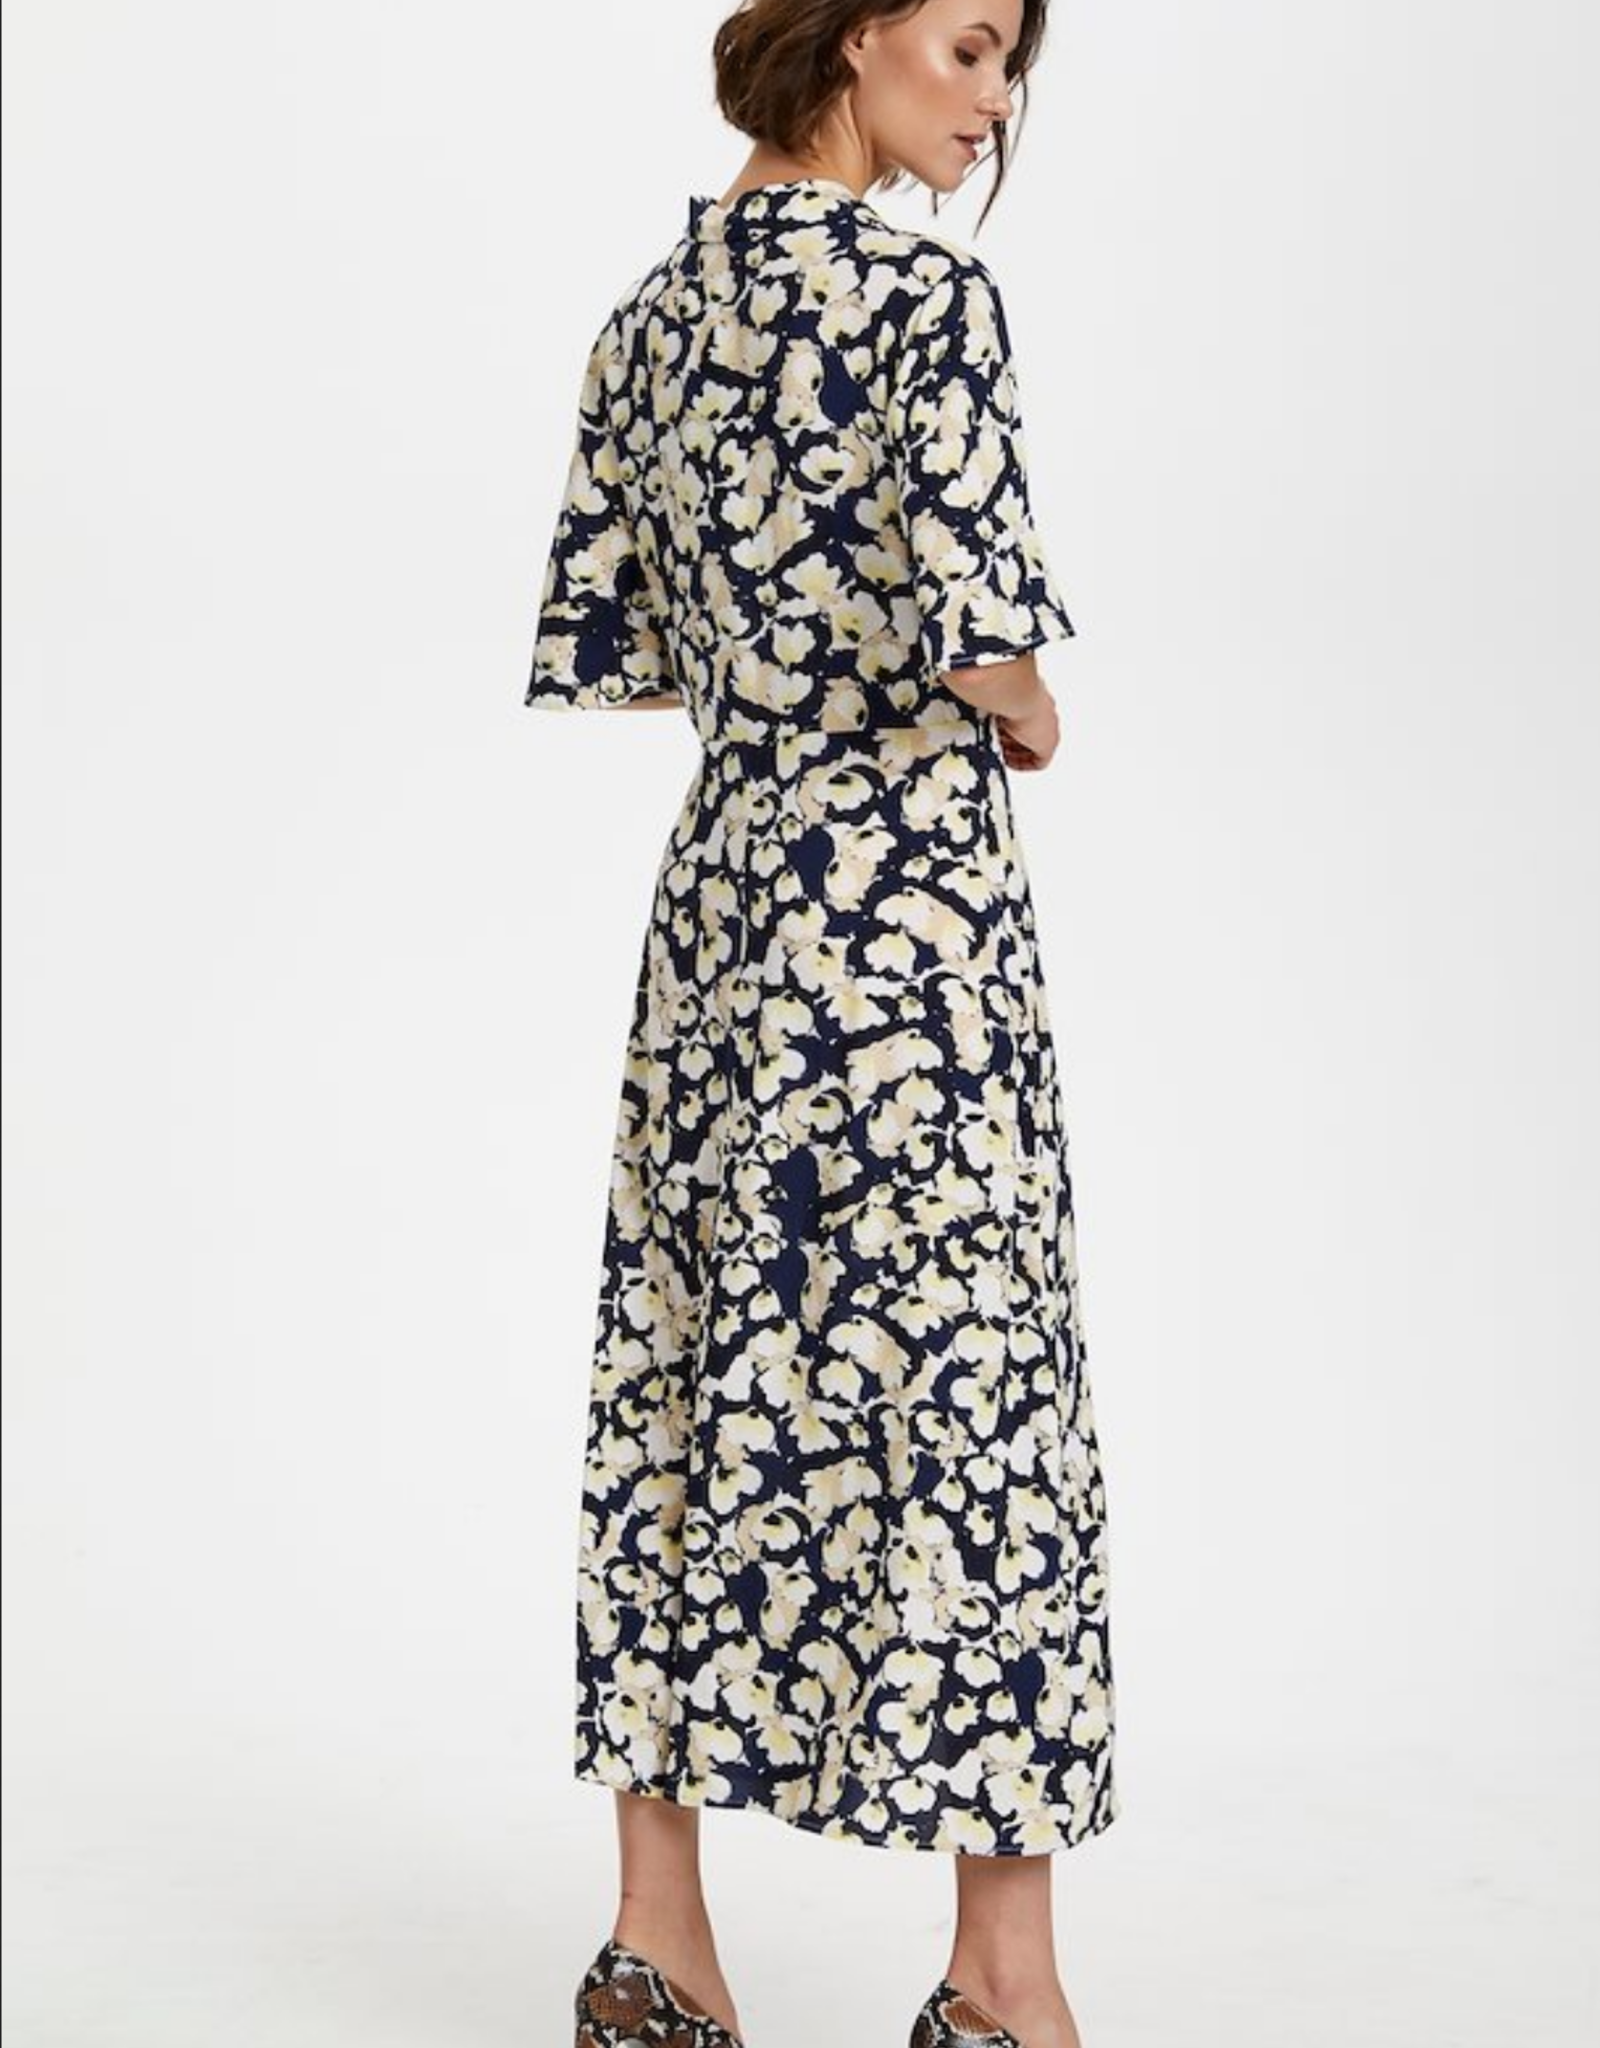 Soaked in Luxury Rafina Shirt Dress floral